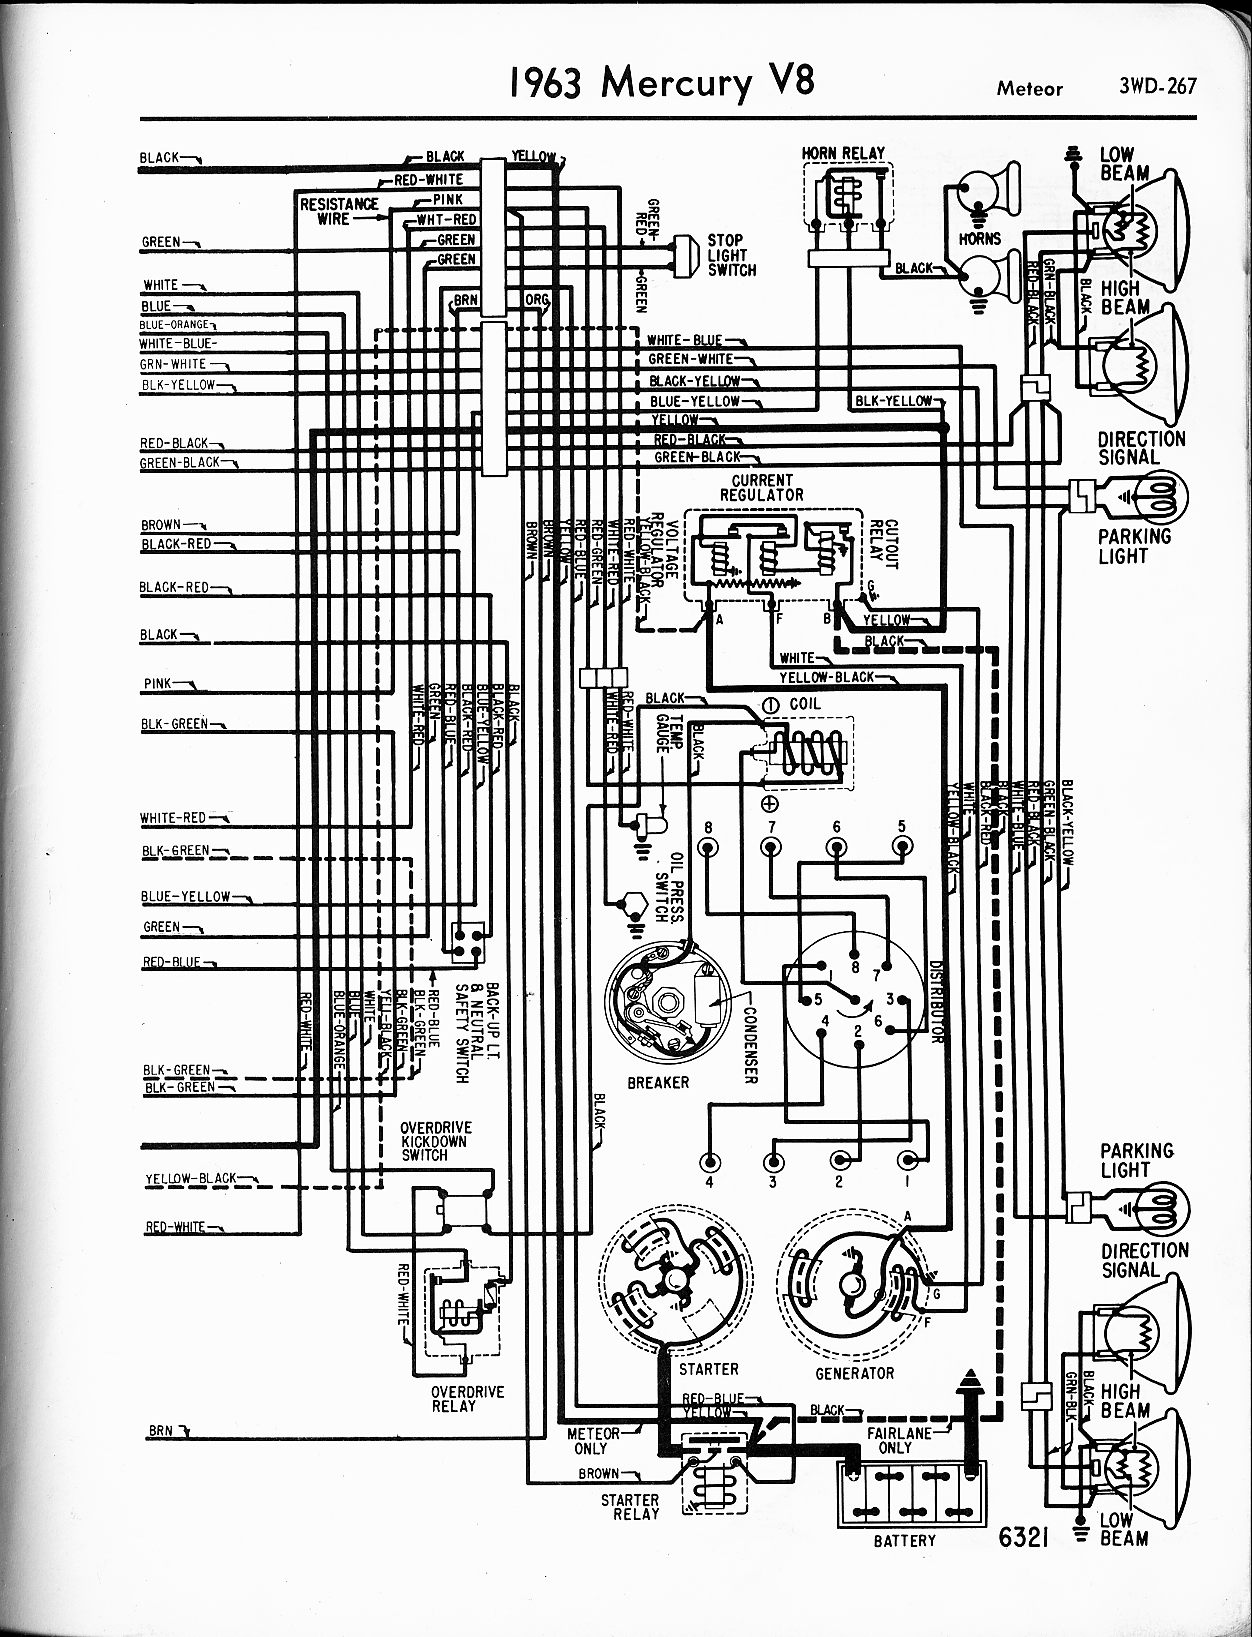 1964 mercury wiring diagram wiring diagrams the  1964 mercury wiring diagram wiring diagram 1964 mercury monterey wiring diagram 1964 mercury comet wiring diagram